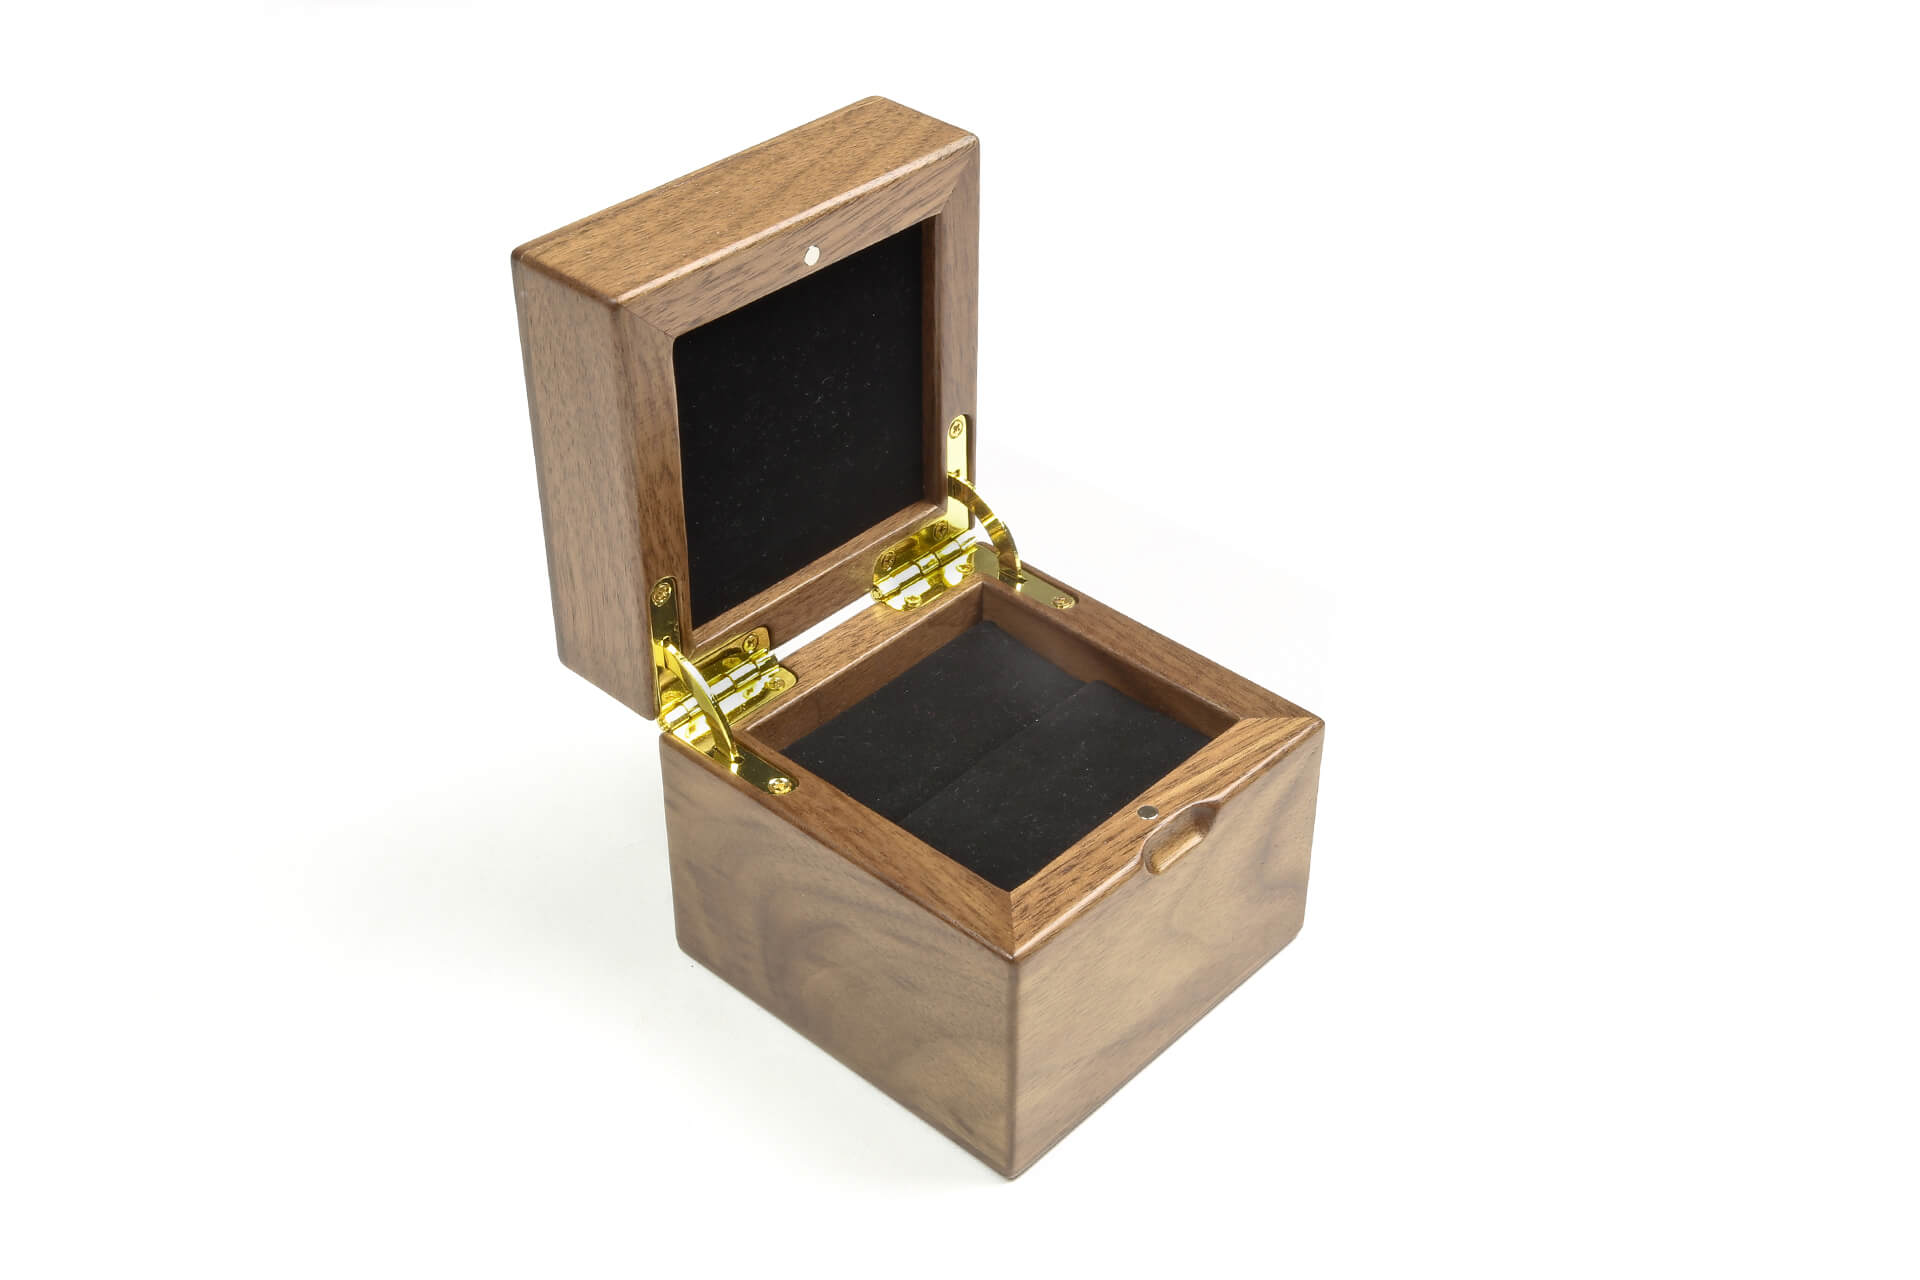 Bespoke jewelry box manufacturer